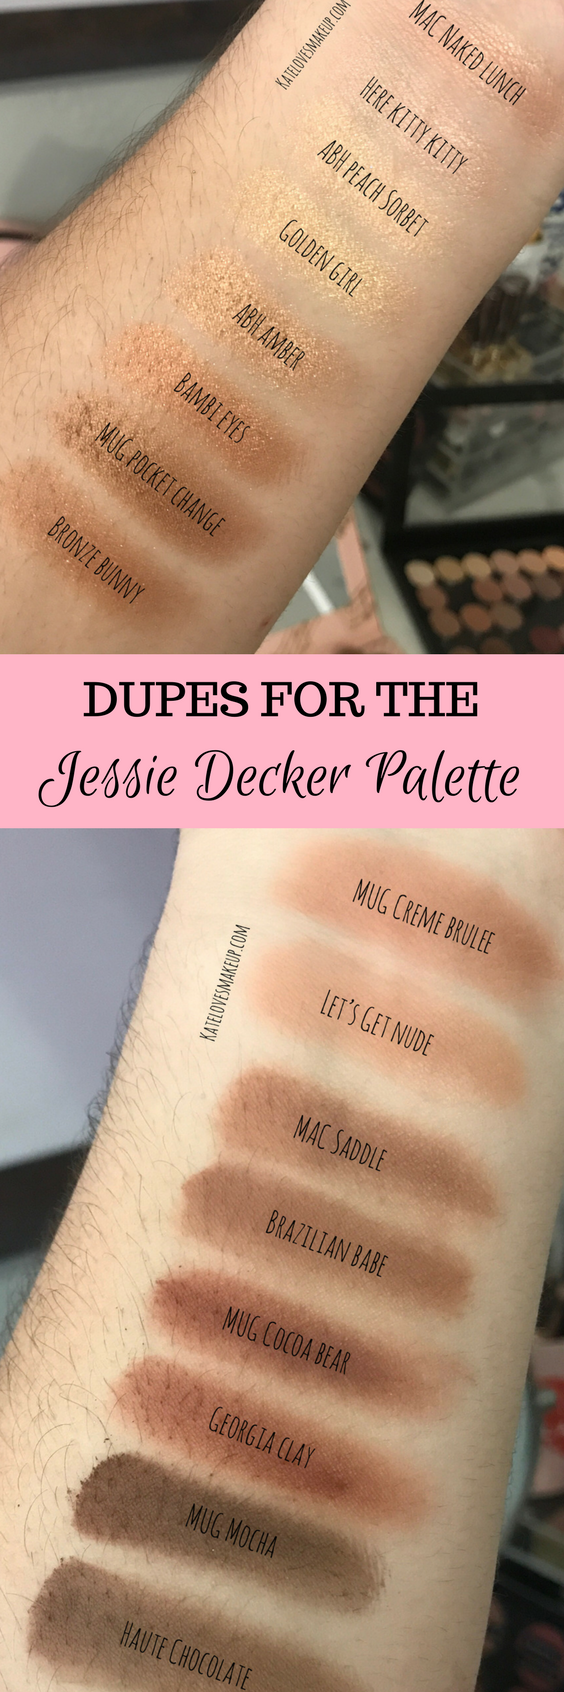 Review swatches and dupes of the Jessie Decker Palette